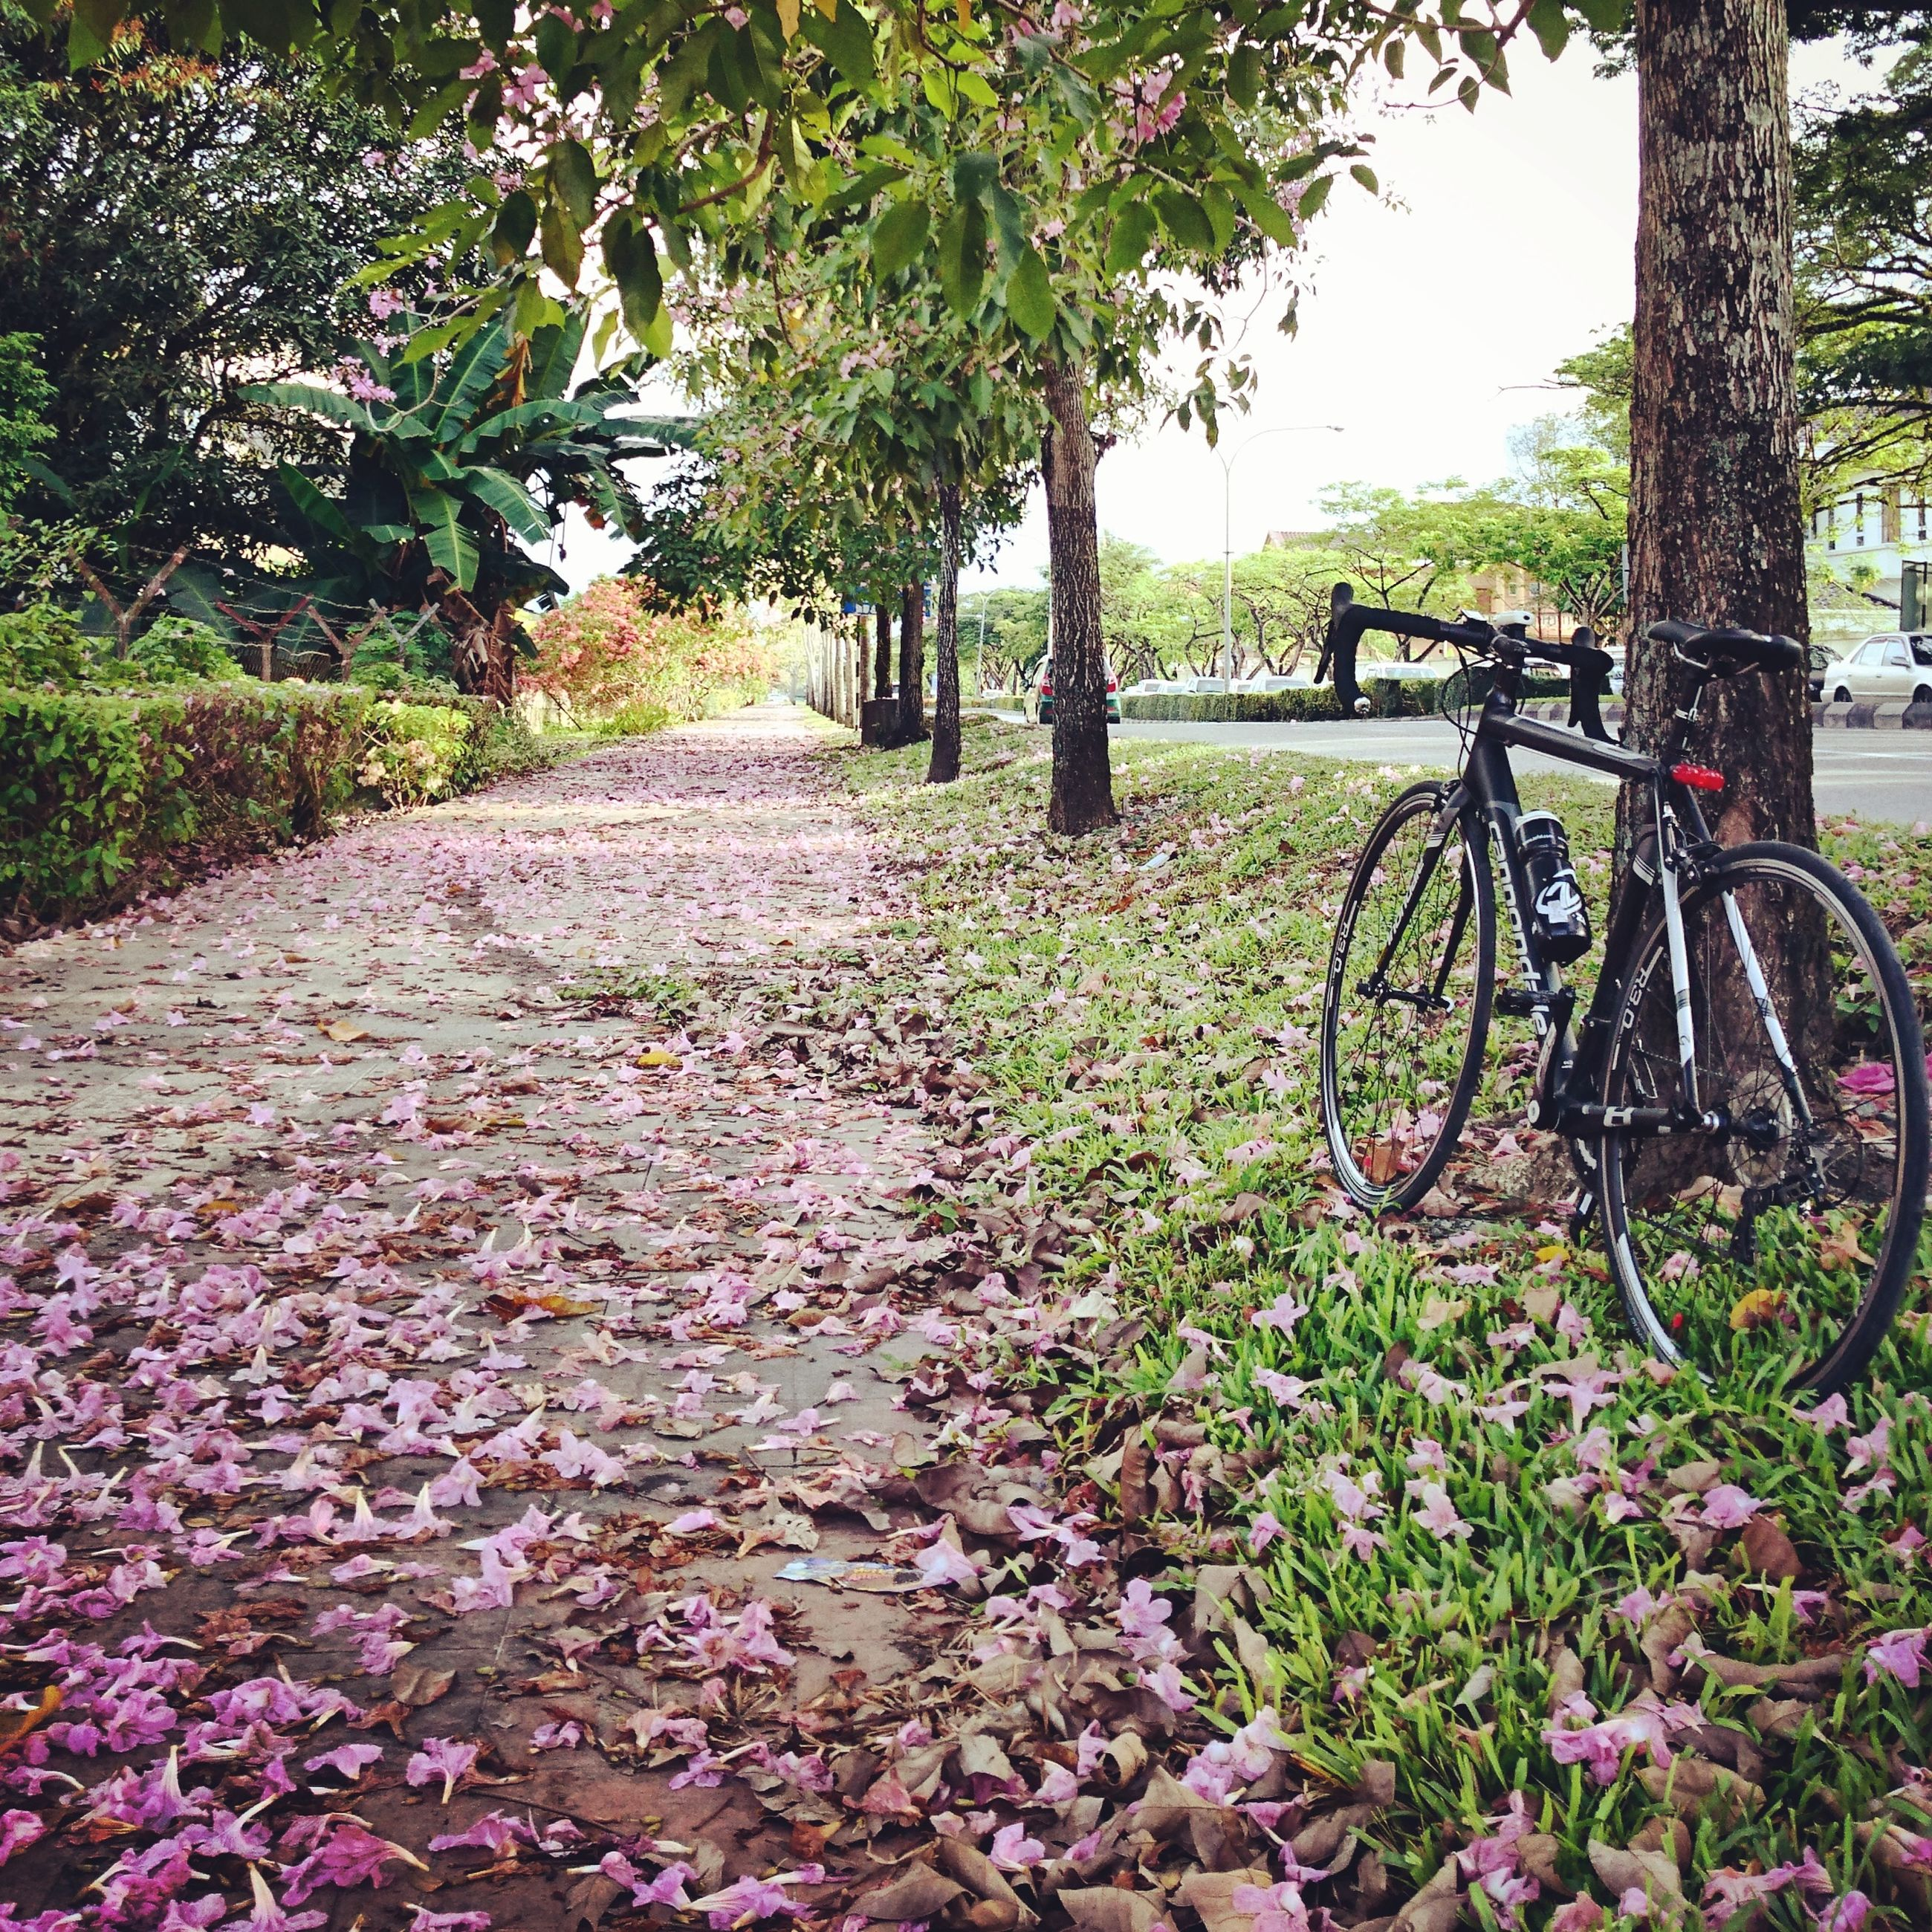 bicycle, transportation, mode of transport, land vehicle, tree, travel, stationary, growth, grass, plant, parking, footpath, narrow, flower, day, park - man made space, parked, the way forward, green color, nature, cycle, outdoors, freshness, petal, beauty in nature, tranquility, surface level